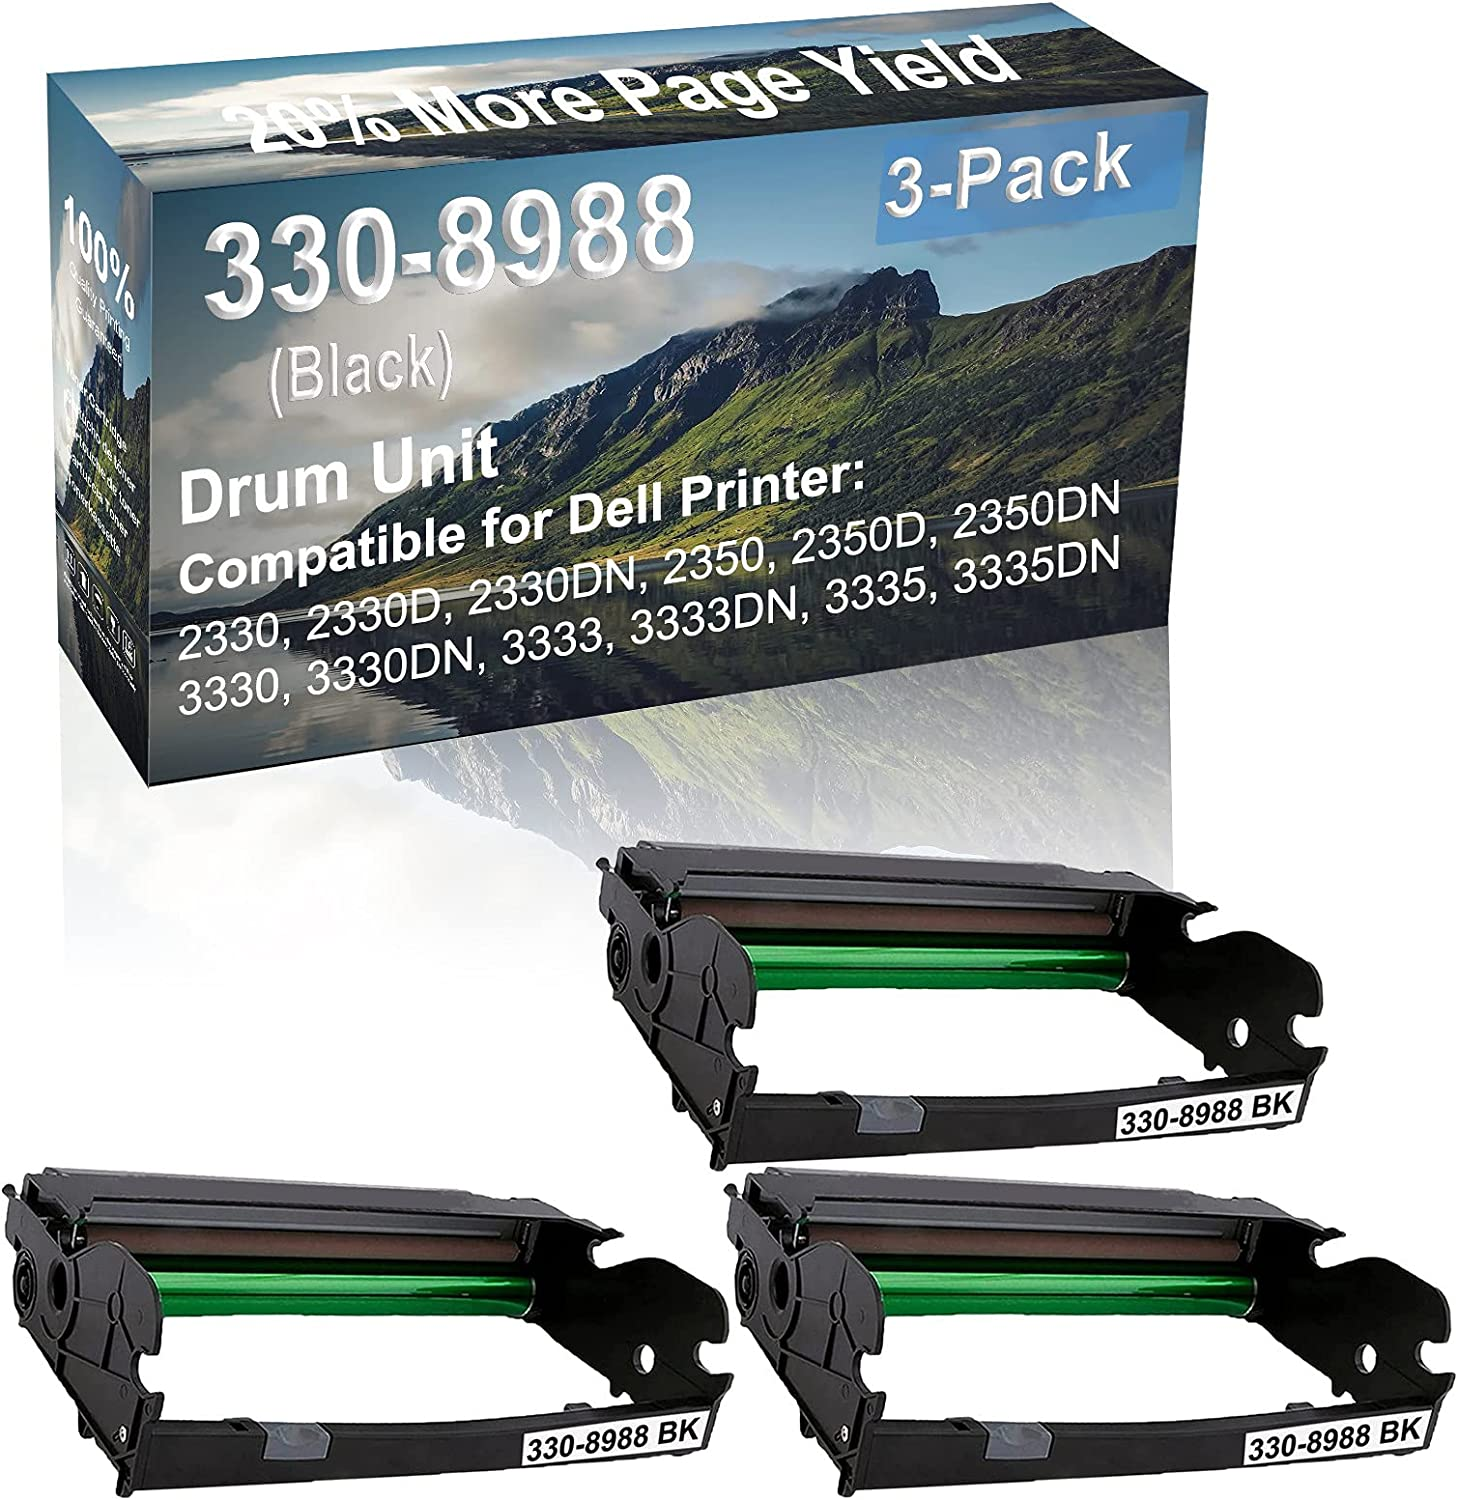 3-Pack Compatible 330-8988 Drum Kit use for Dell 2330, 2330D, 2330DN, 2350 Printer (Black)